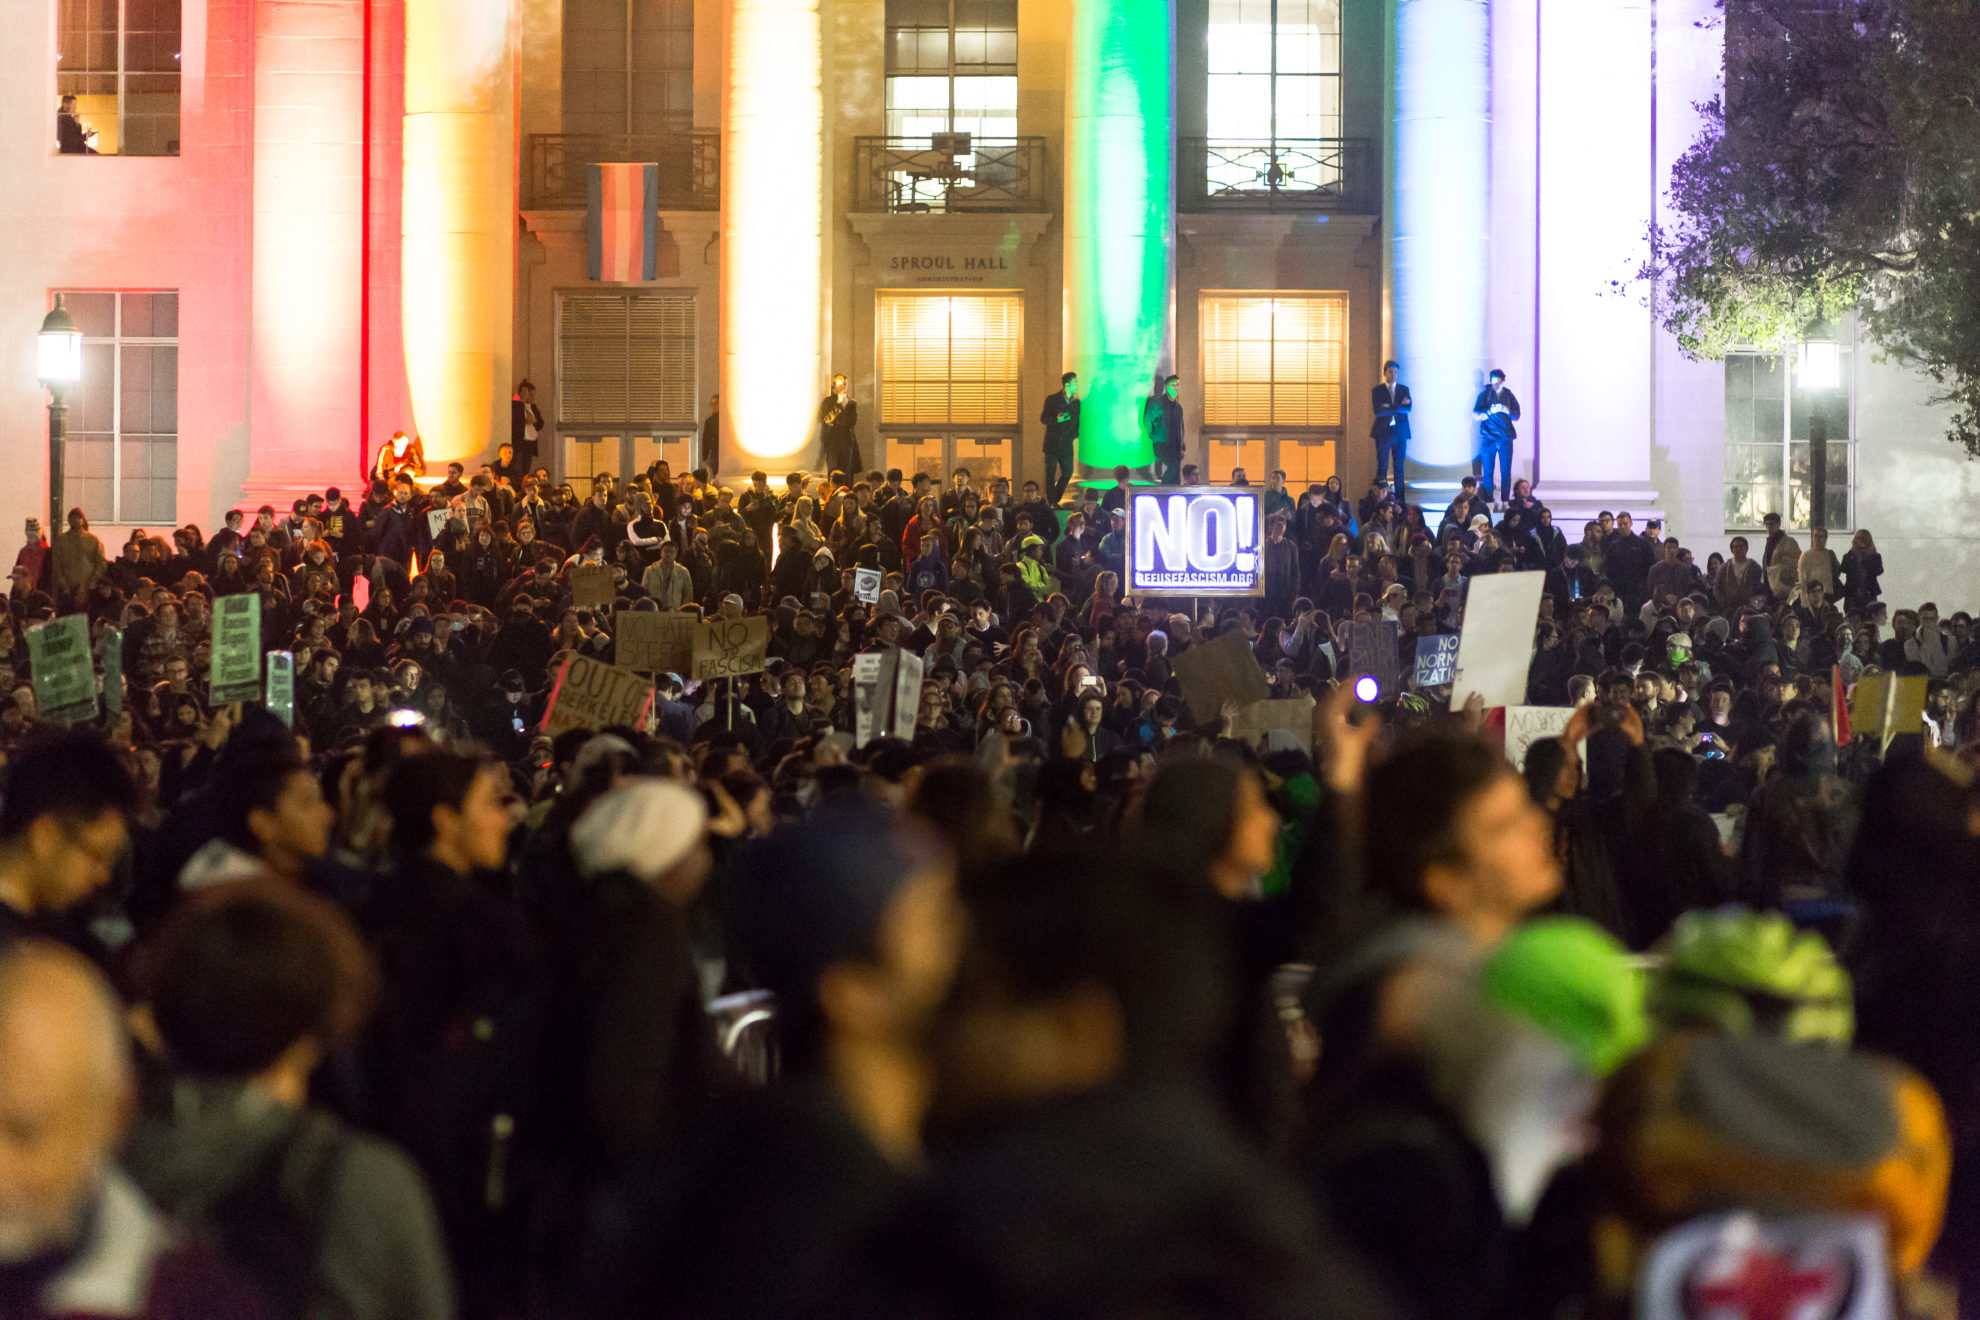 Demonstrations in Berkeley spurred by the planned visit of Milo Yiannopoulos. Photo by Jo Parks (Creative Commons Licence: Attribution Non-commercial)